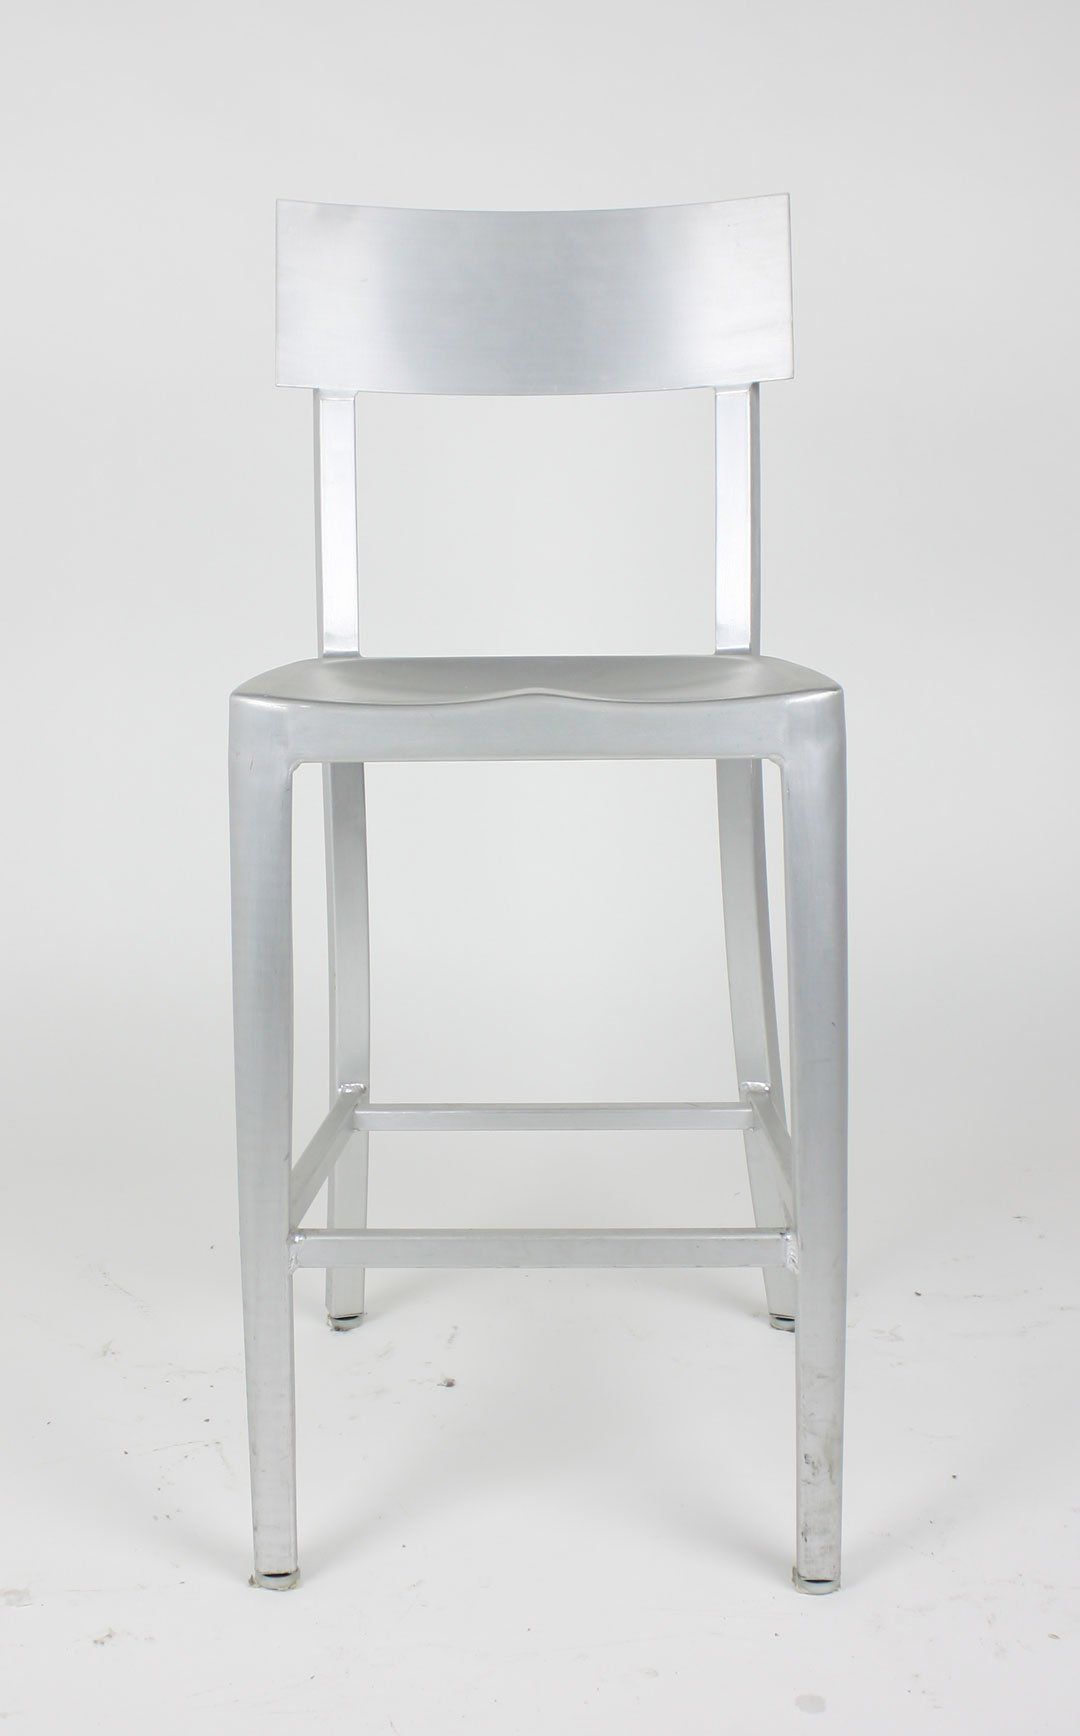 brushed aluminum chairs dining tables with modern cafe chair in counter